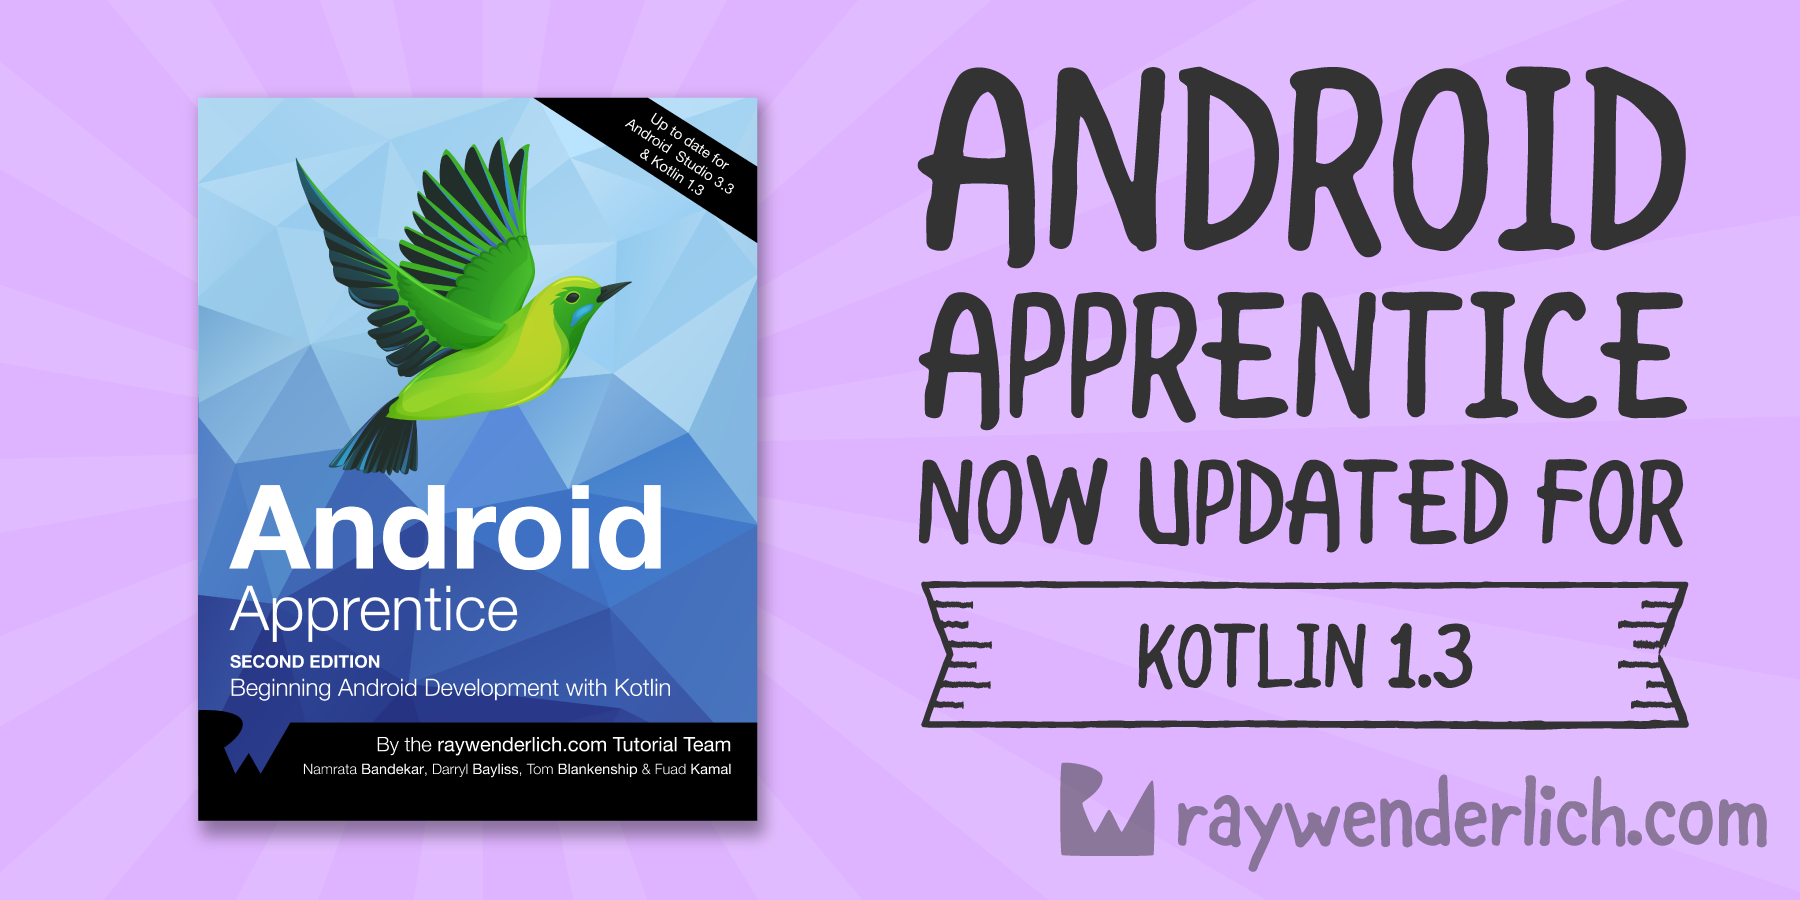 QnA VBage Android Apprentice Book Now Updated for Kotlin 1.3! [FREE]